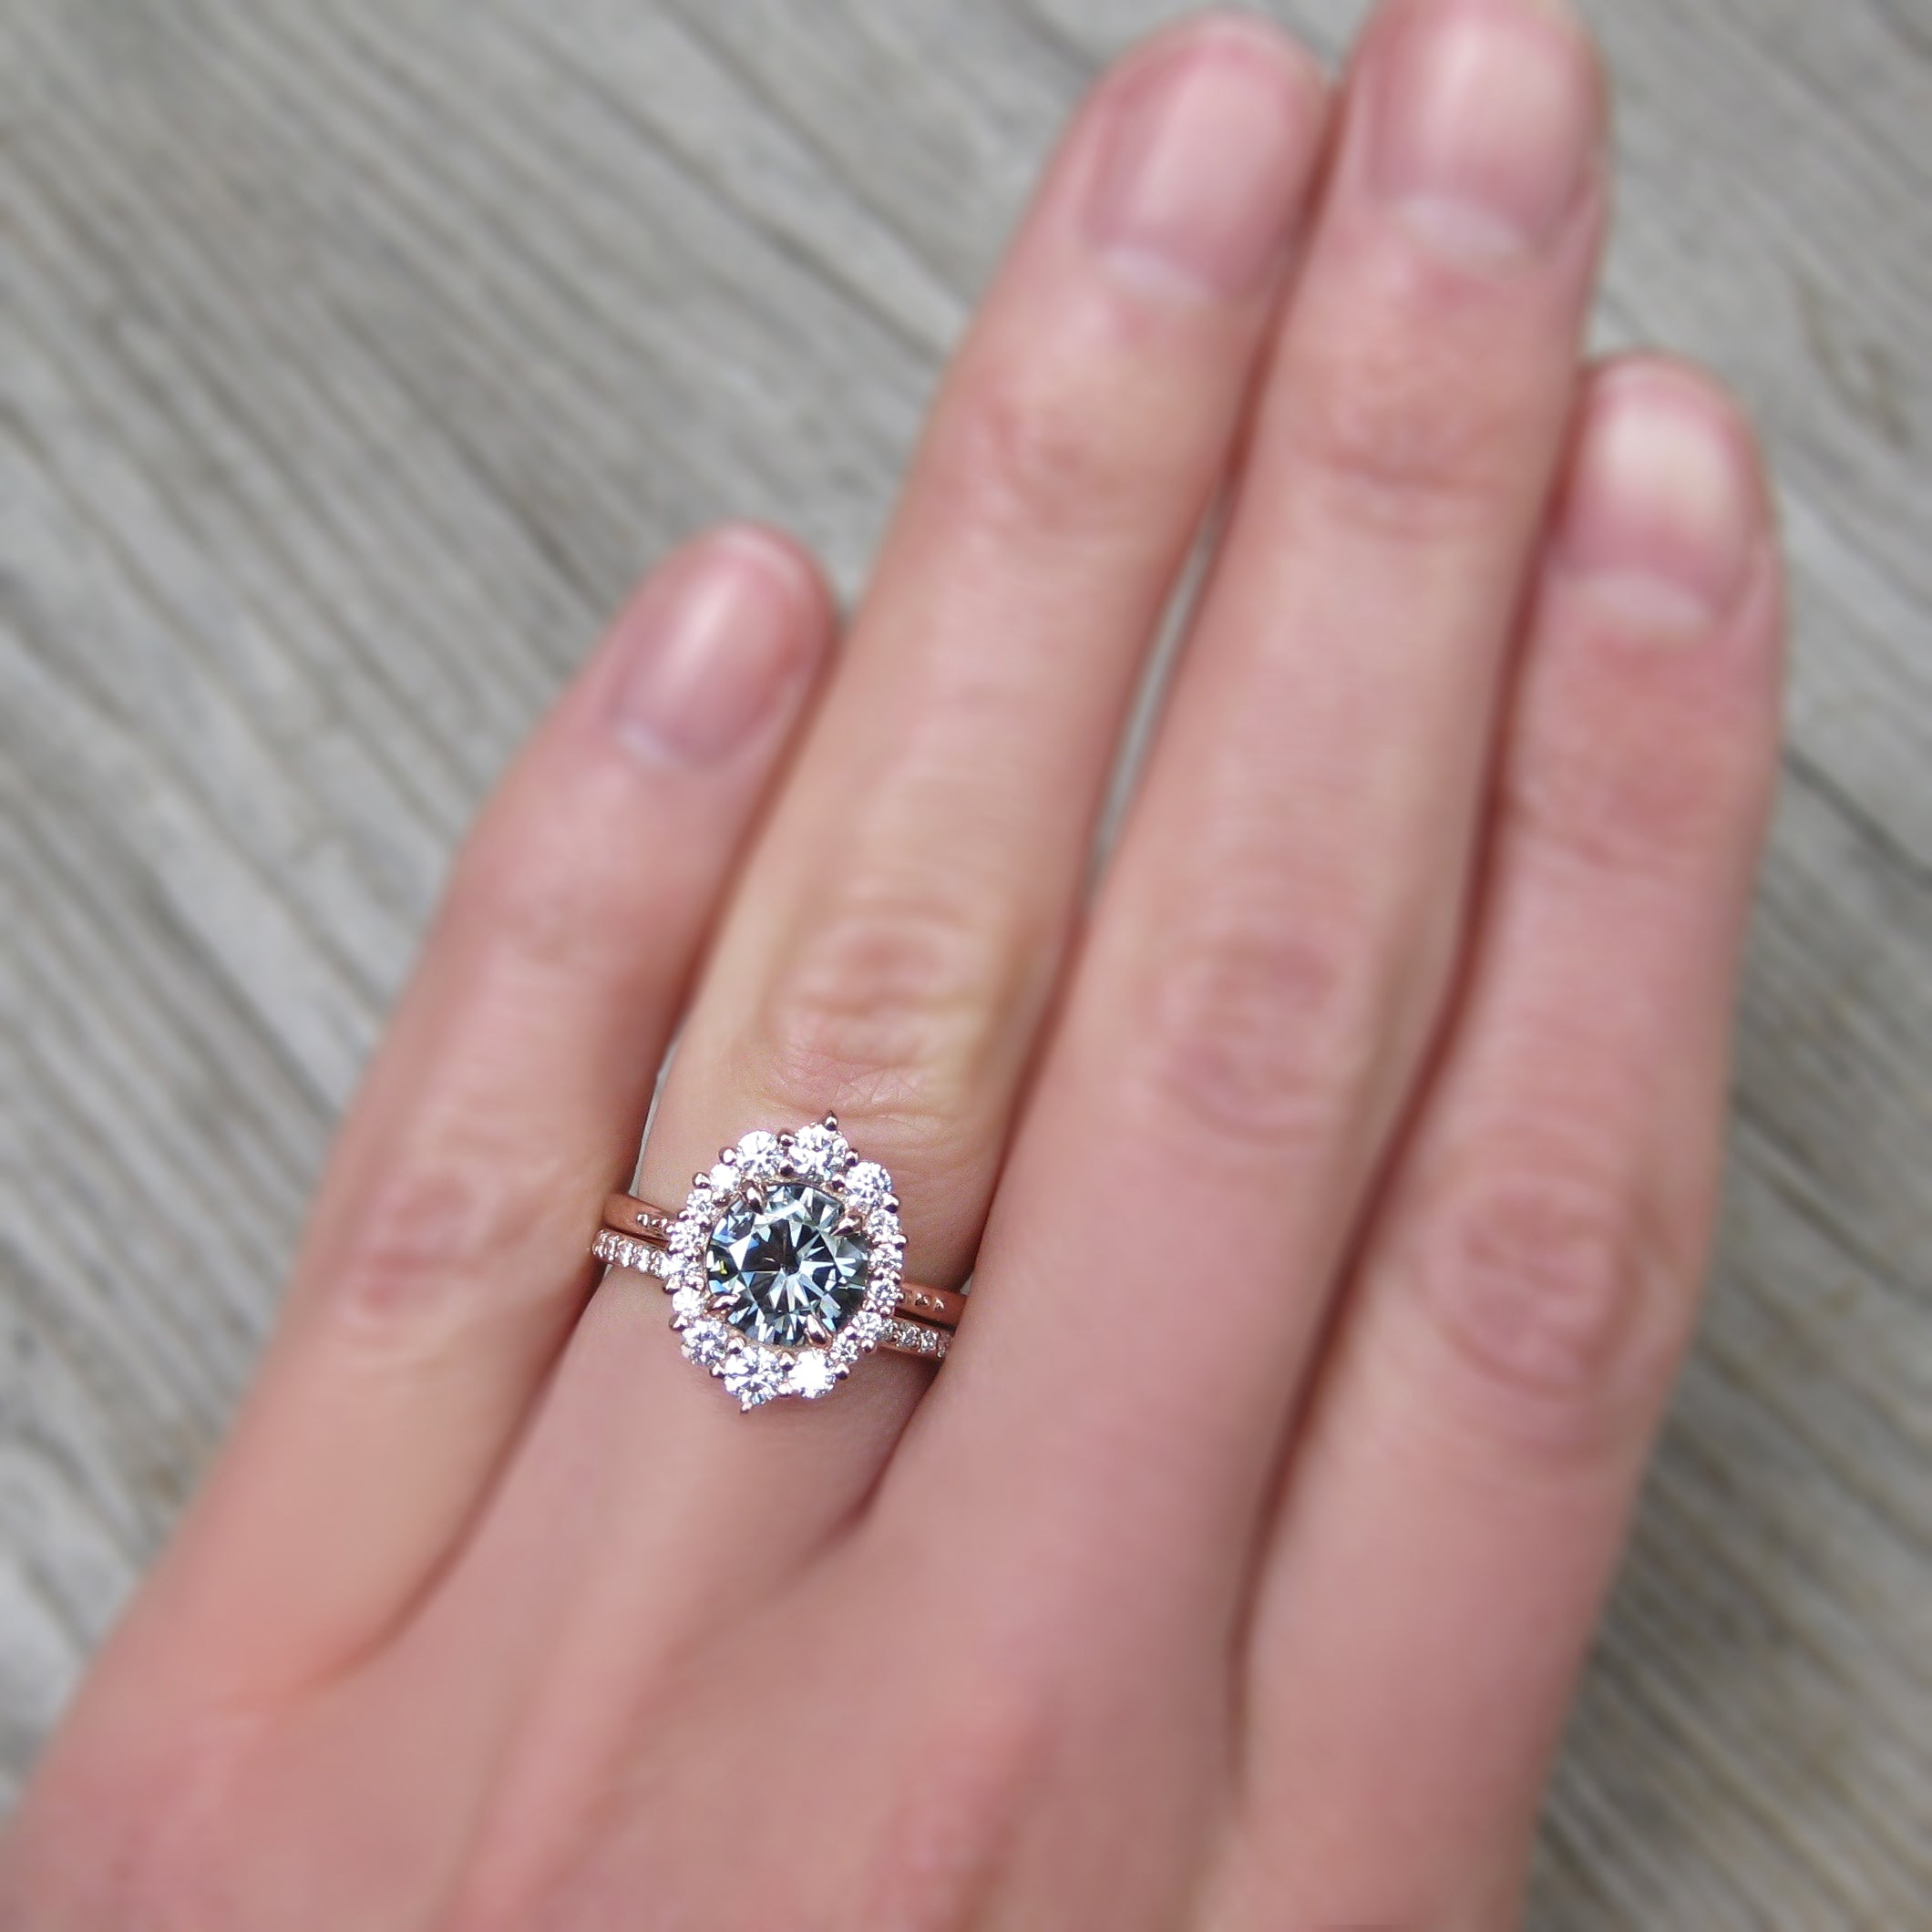 moissanite wedding band - Wedding Decor Ideas